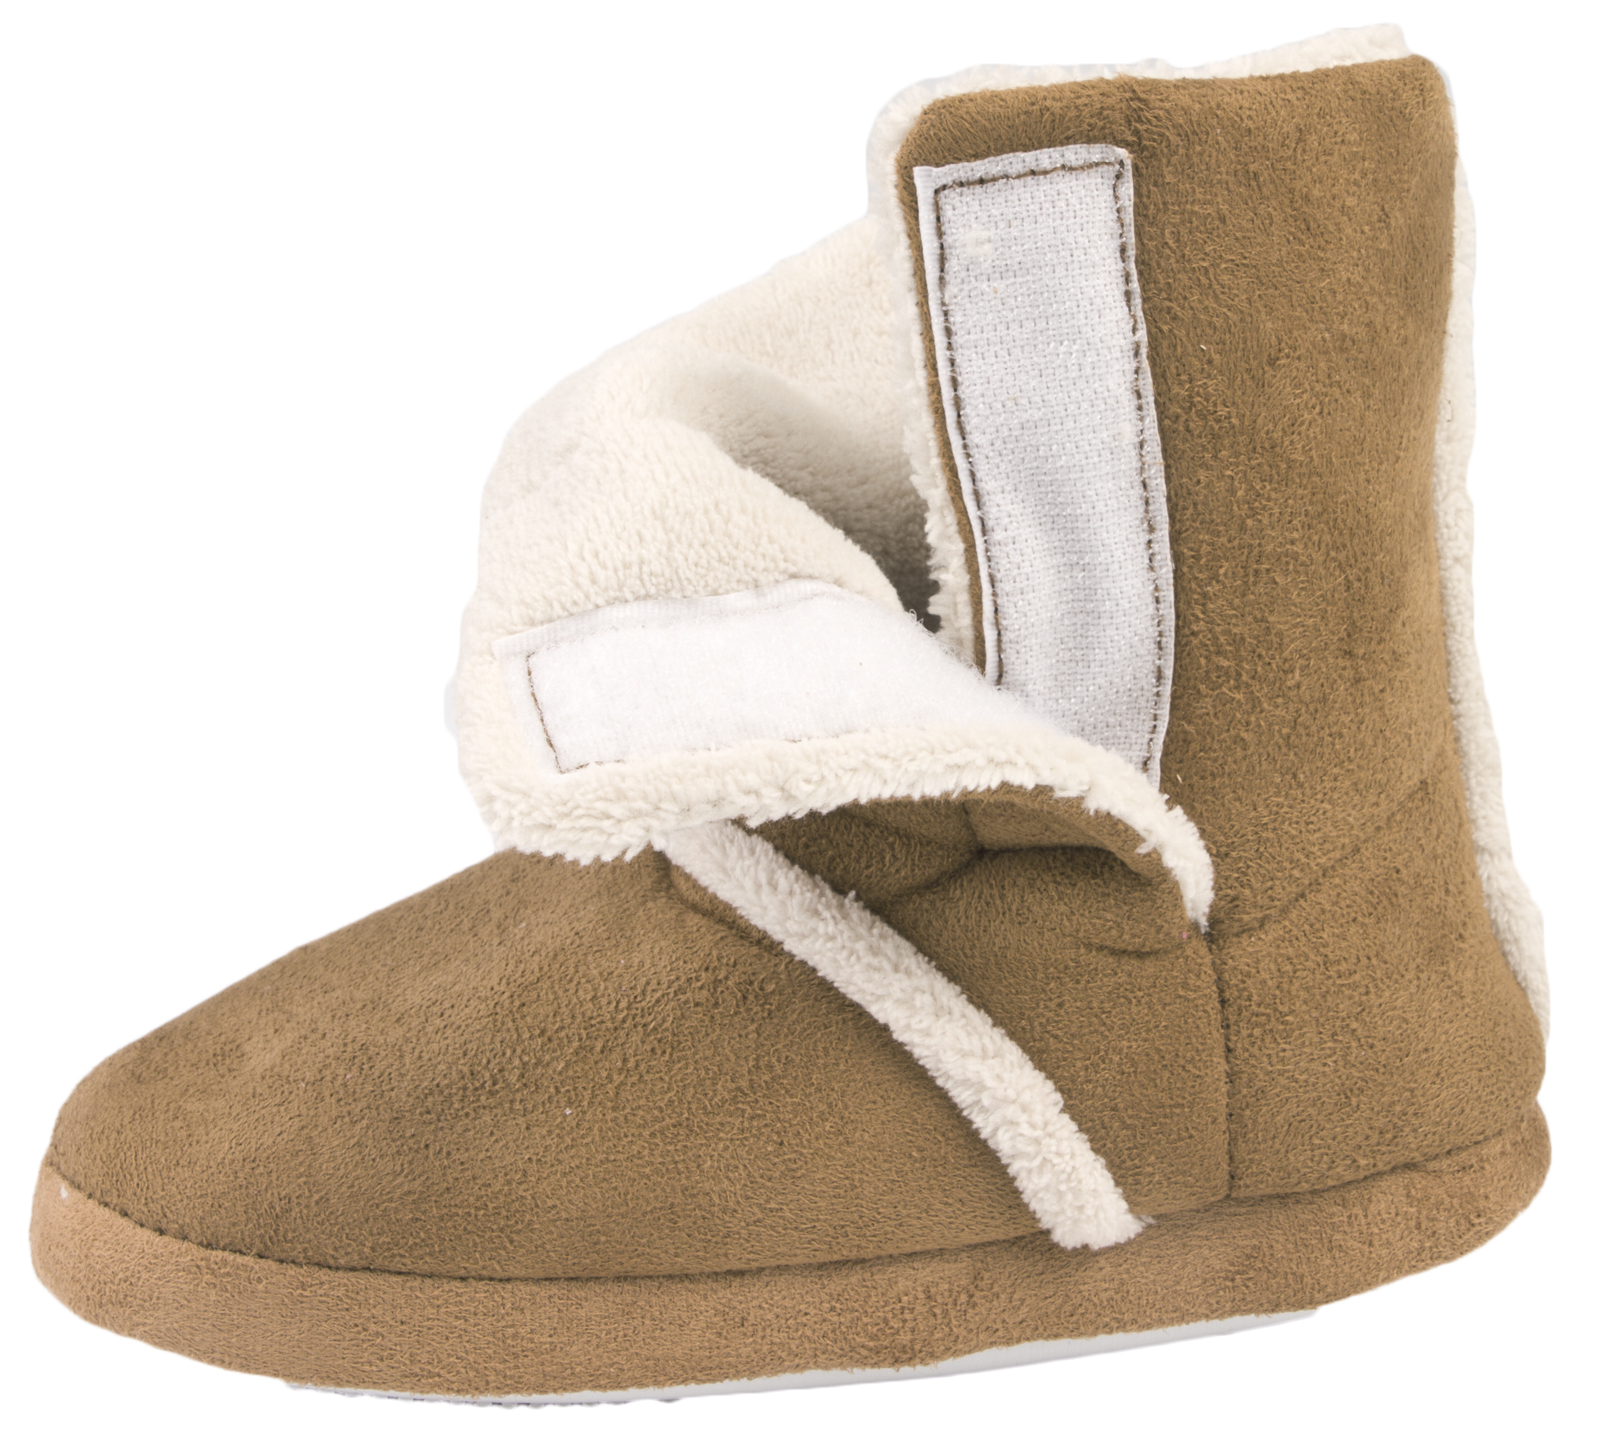 These Dearfoams women's sherpa fleece-lined cross stitch scuff slippers have comfort, style and wonderful warmth. A memory foam insole cradles your feet, while the soft sherpa fleece cuff and lining keeps you warm and cozy.